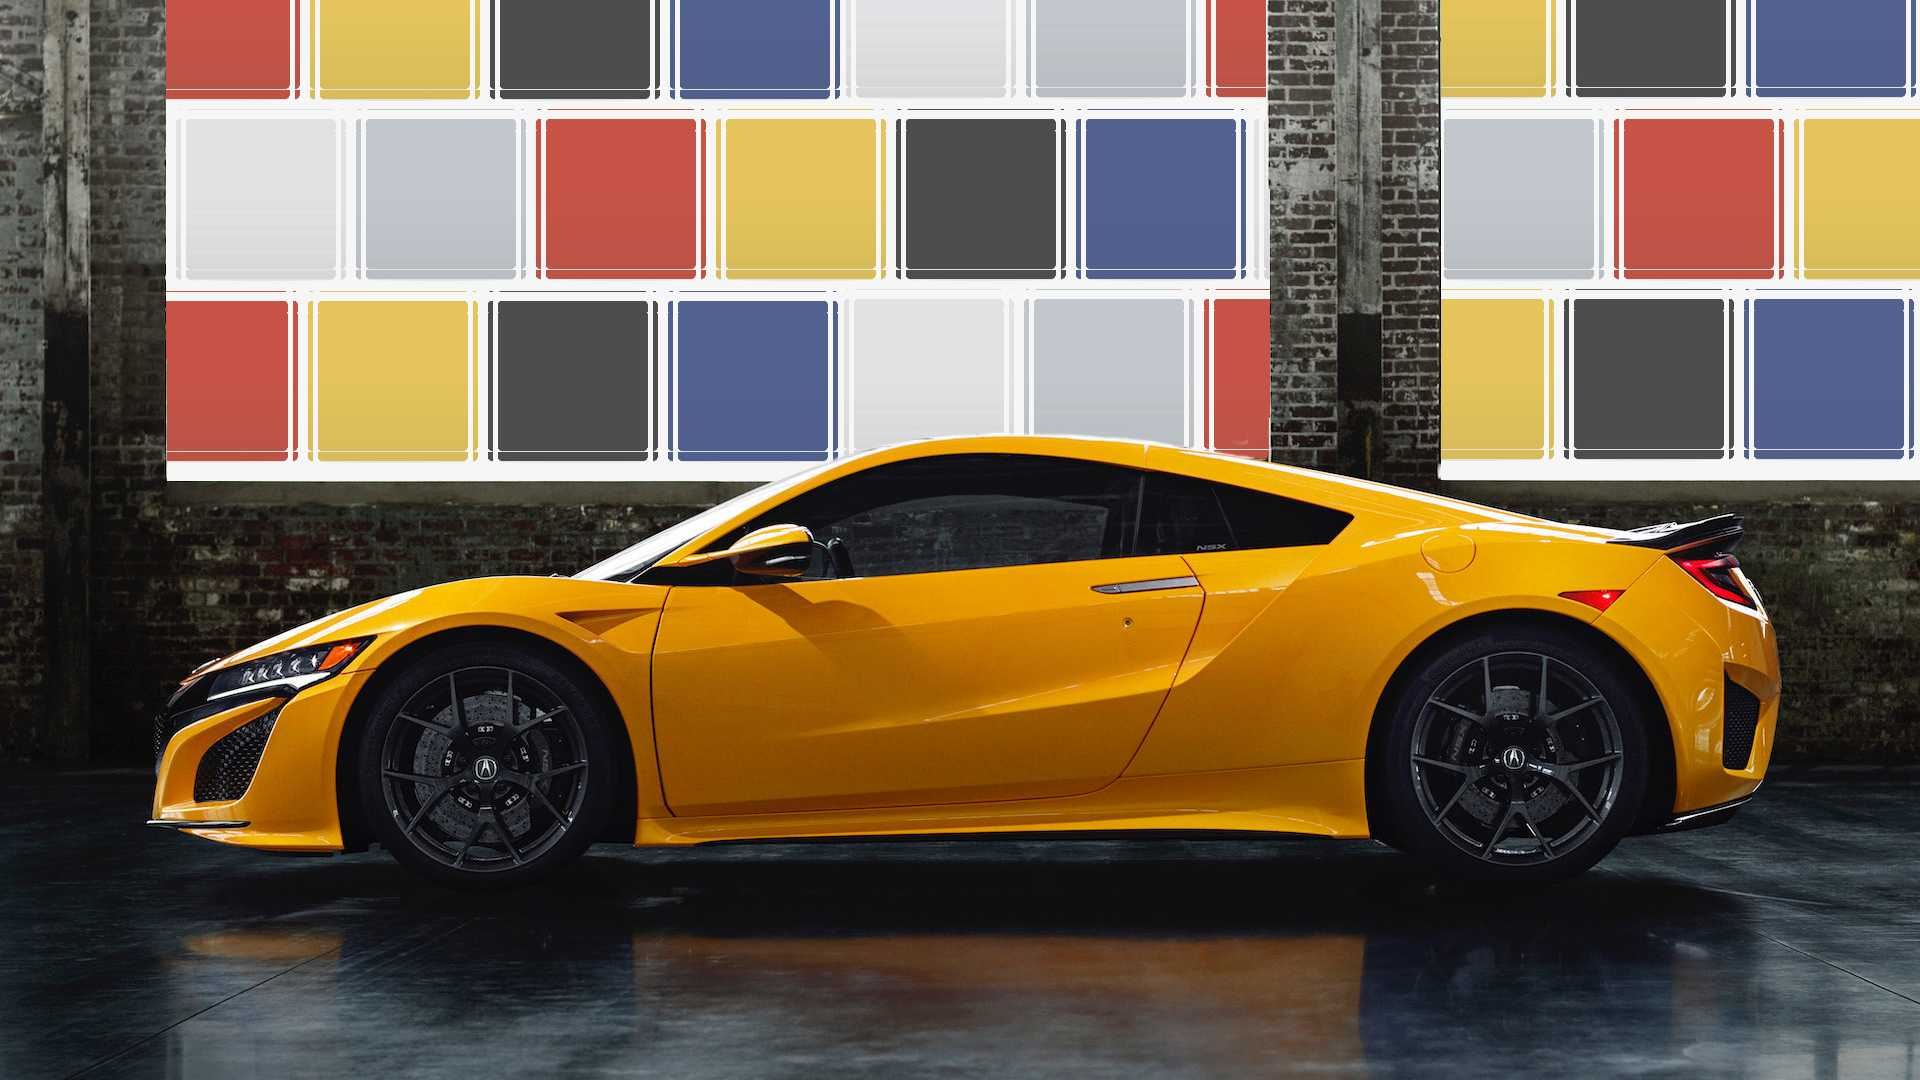 Super Shades: 15 Best New Car Colors Of 2019